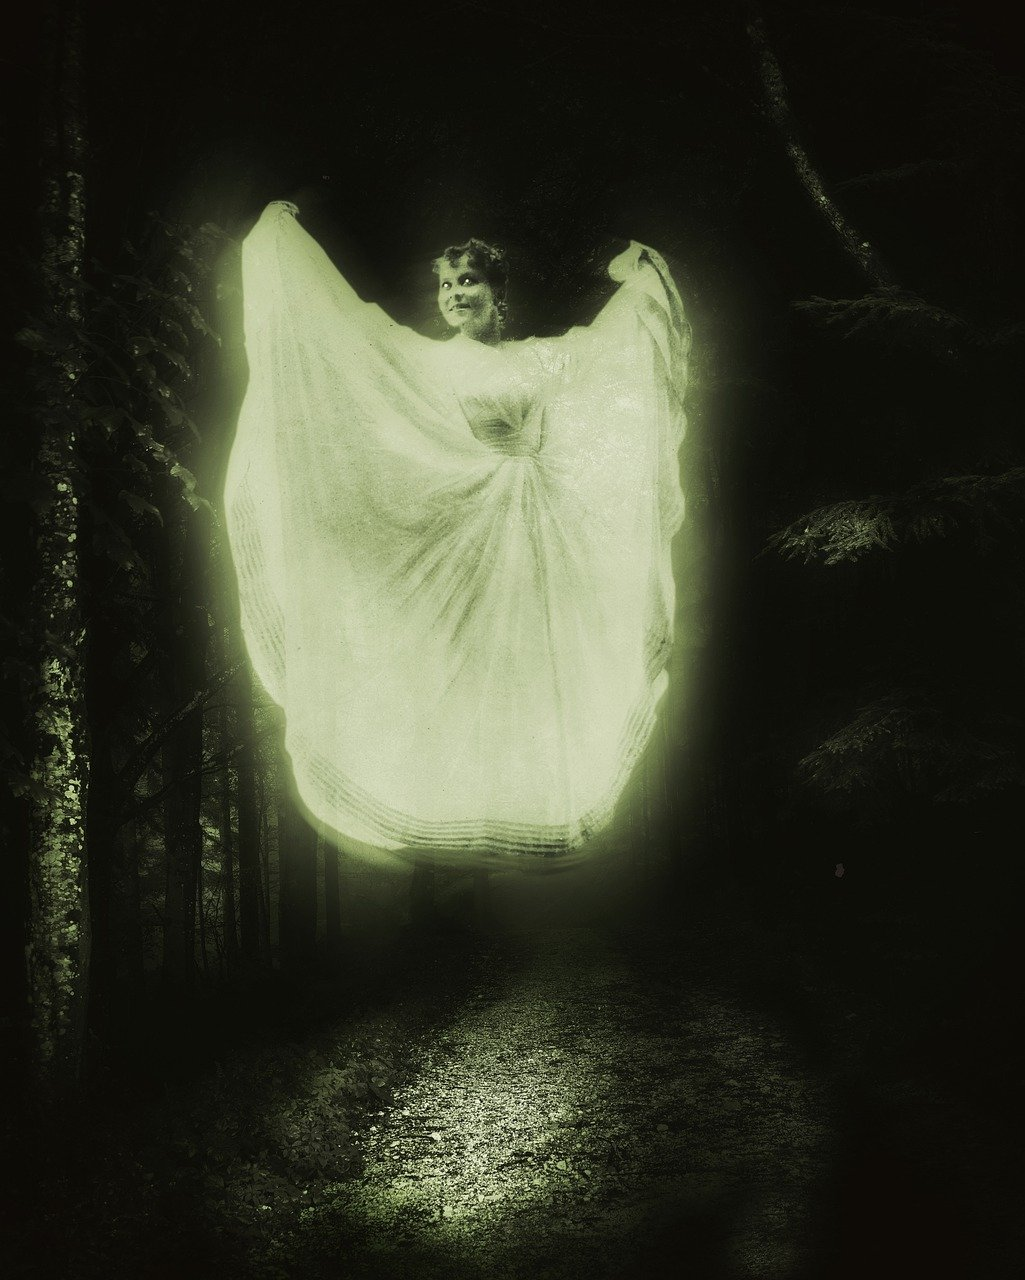 image of a young woman in a white gown floating over a dirt road in a forest